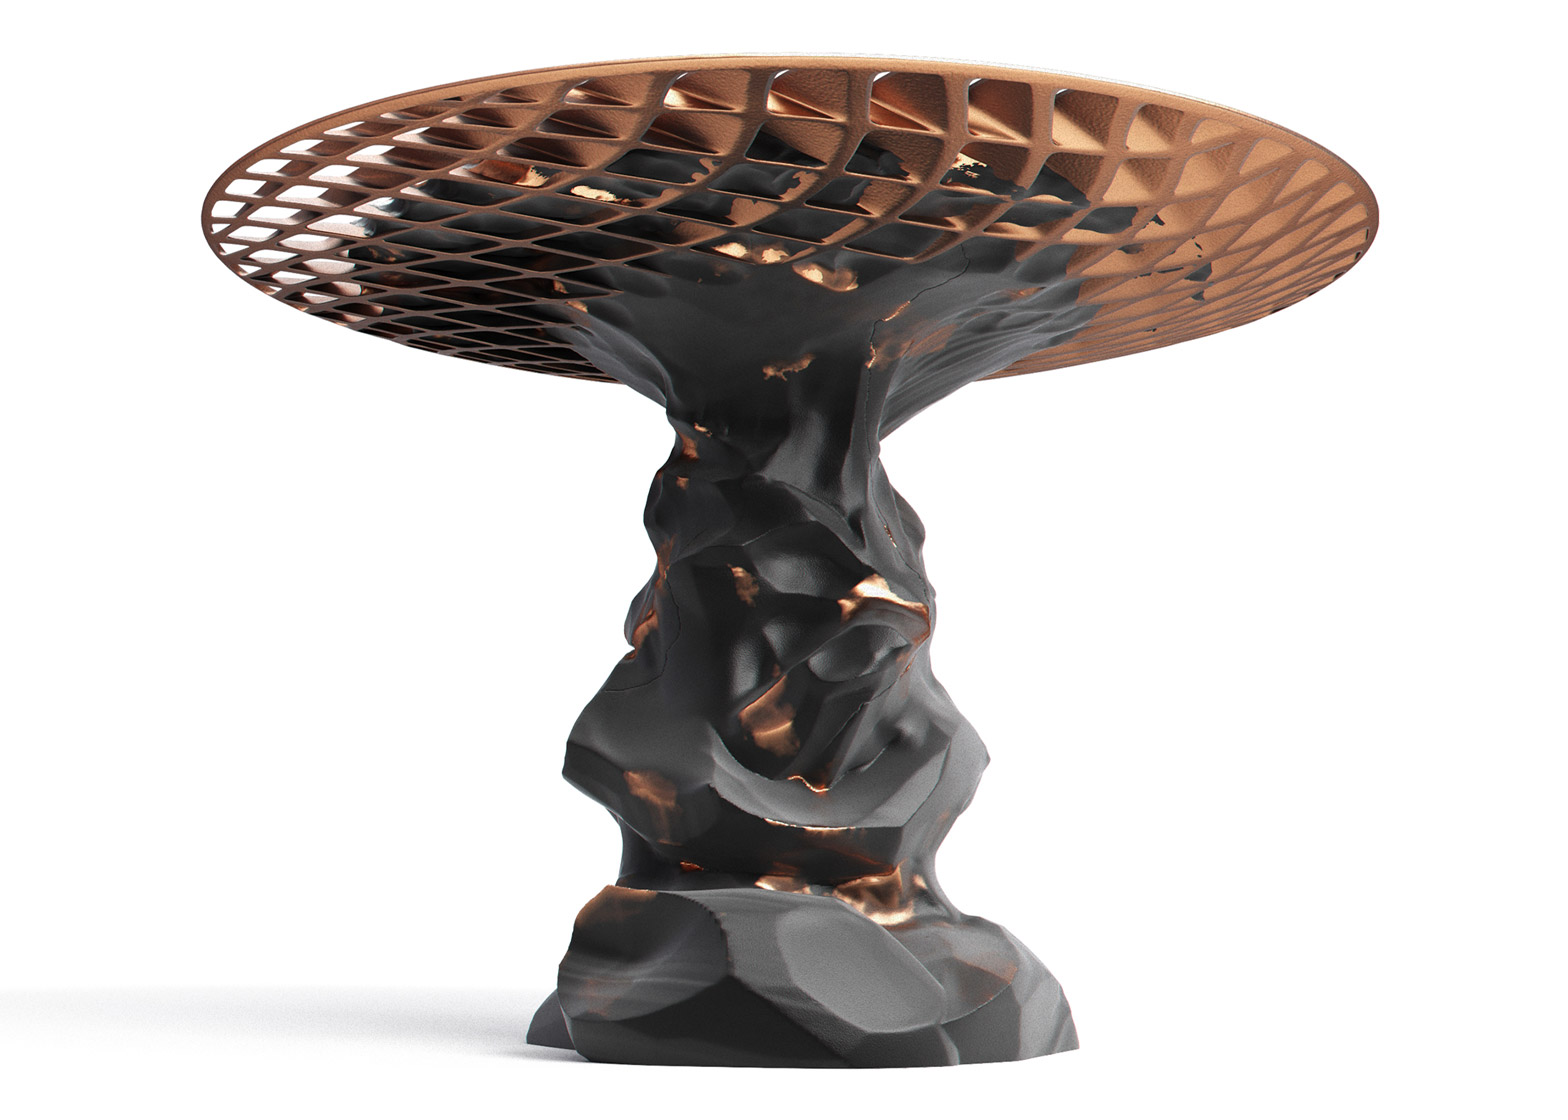 Janne Kyttanen's explosively welded Metsidian side table